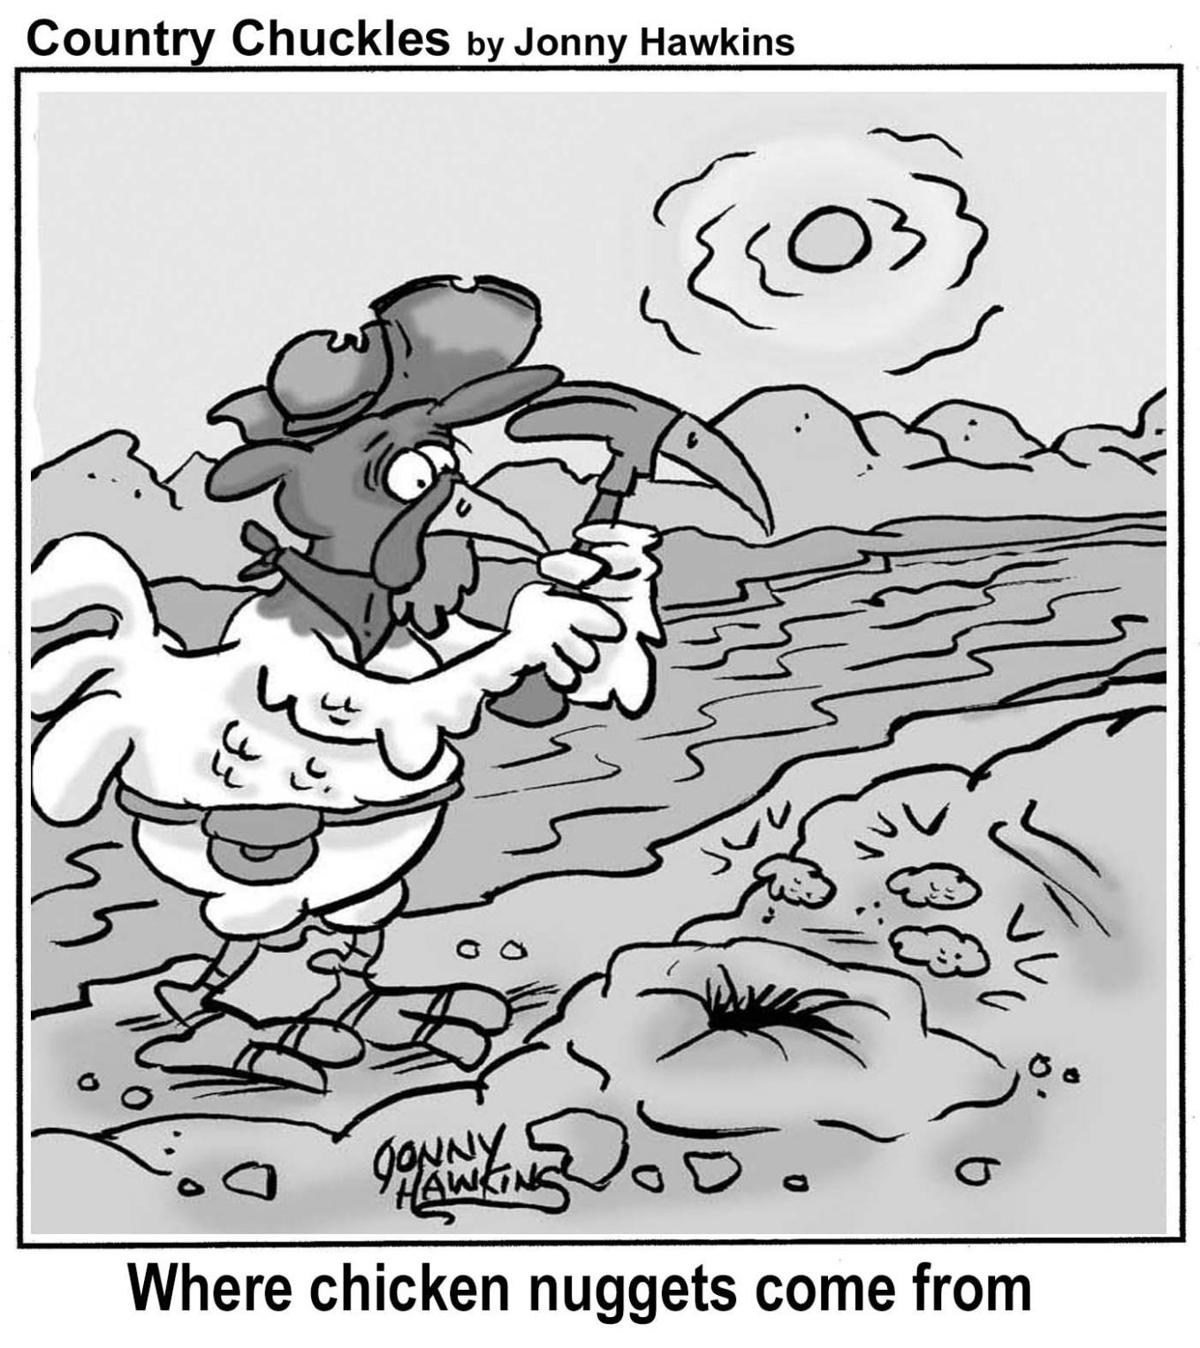 Country Chuckles by Jonny Hawkins